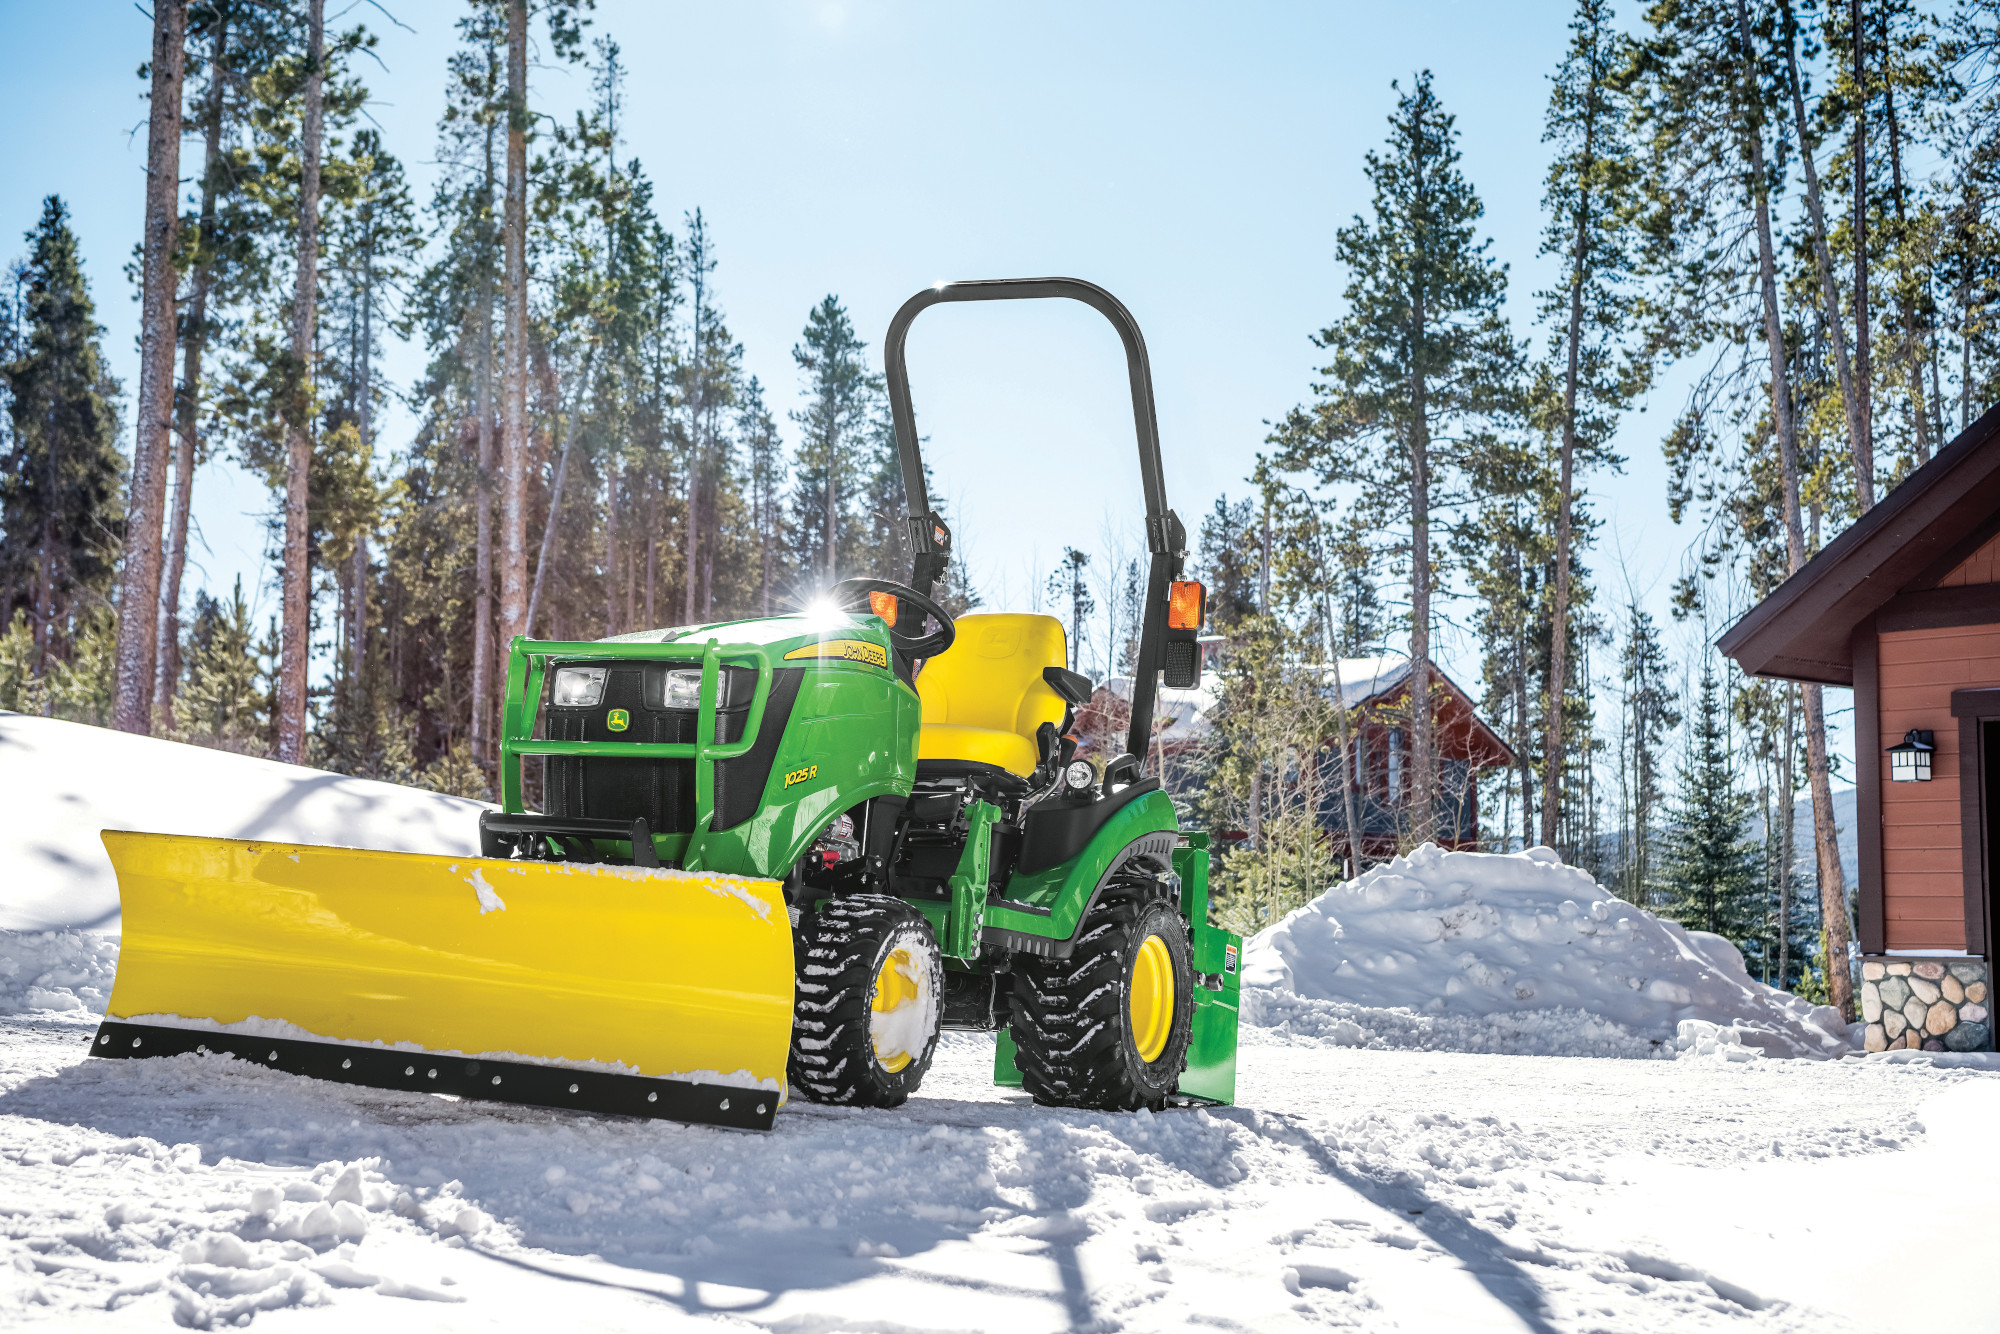 John Deere 1025R with quick hitch front blade